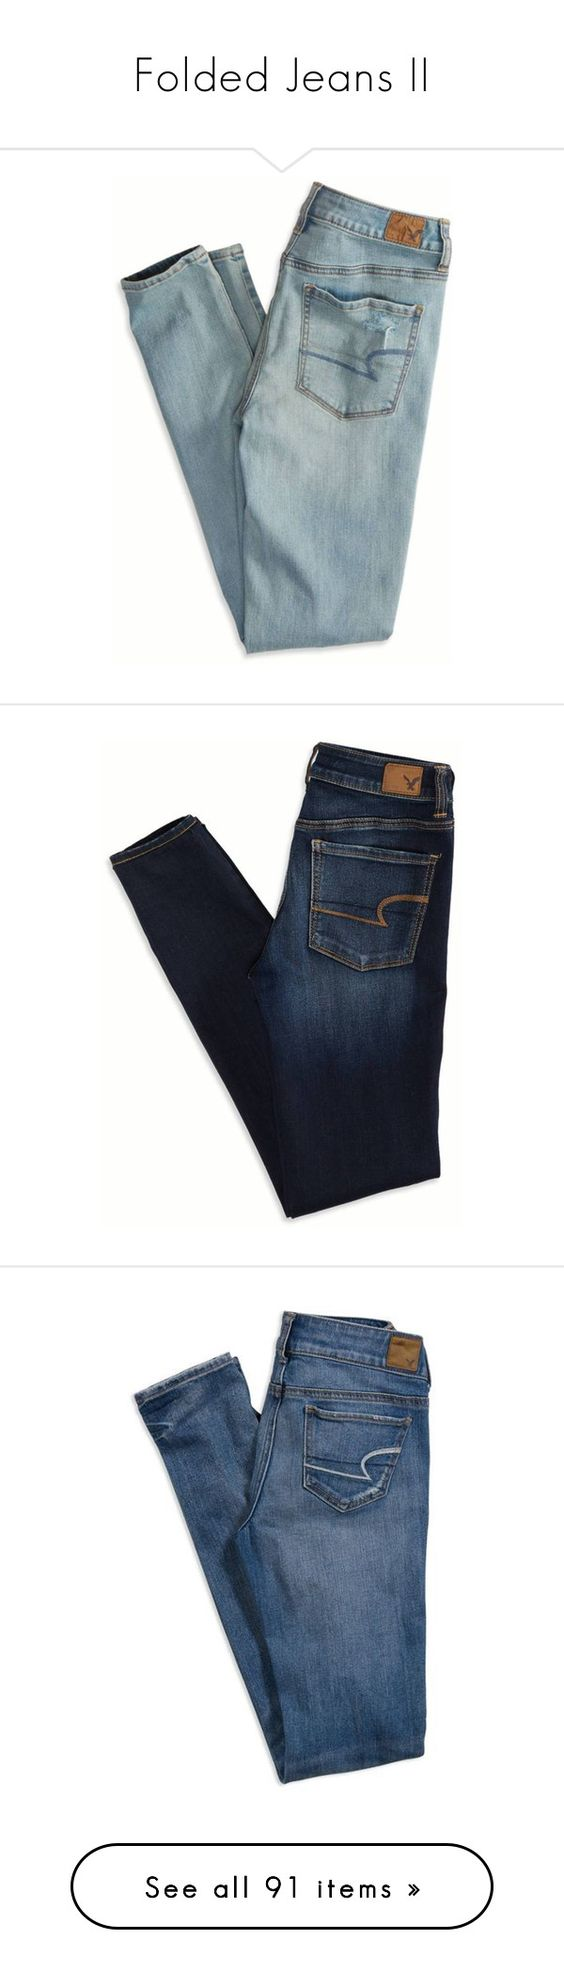 """""""Folded Jeans II"""" by bitbyacullen ❤ liked on Polyvore featuring jeans, pants, bottoms, trousers, american eagle outfitters, folded, pantalones, blue skinny jeans, american eagle outfitters jeans and blue jeans"""